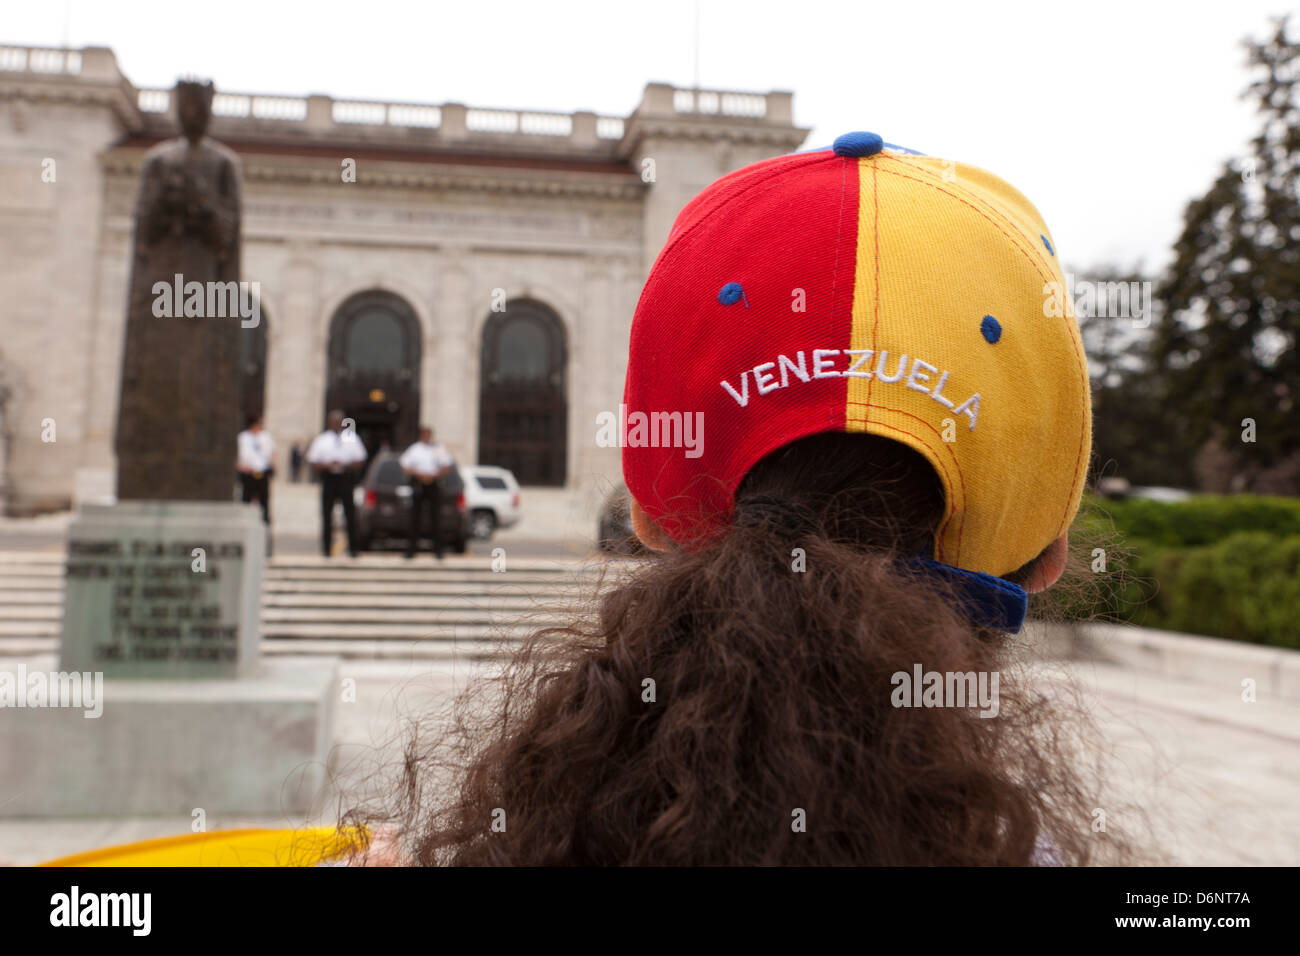 Woman wearing Venezuela cap - Stock Image